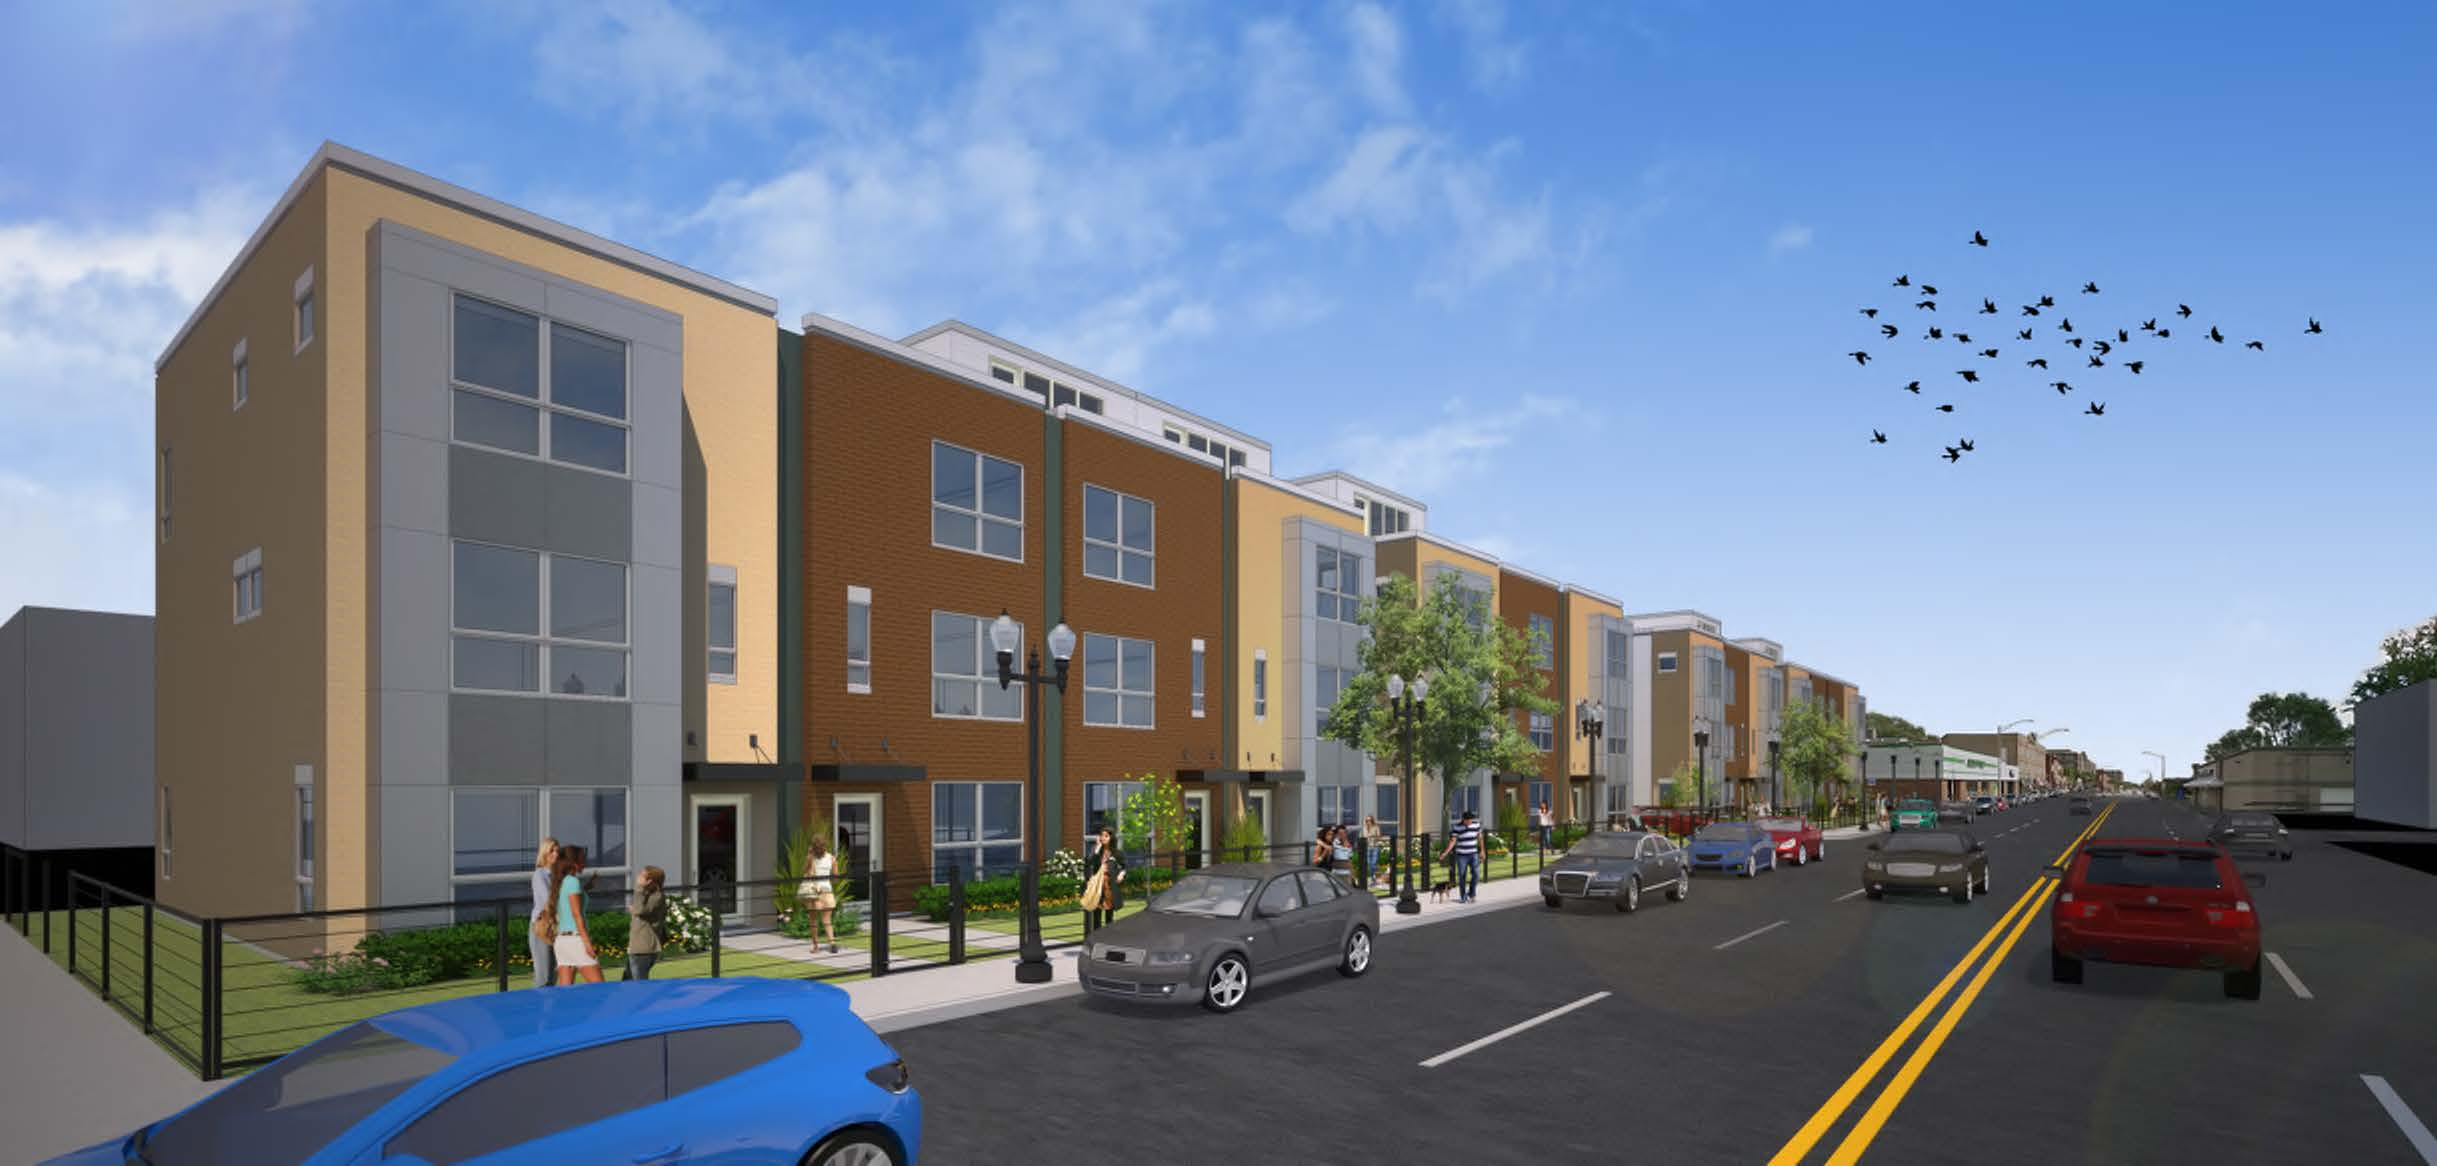 Rendering of Lexington Homes development